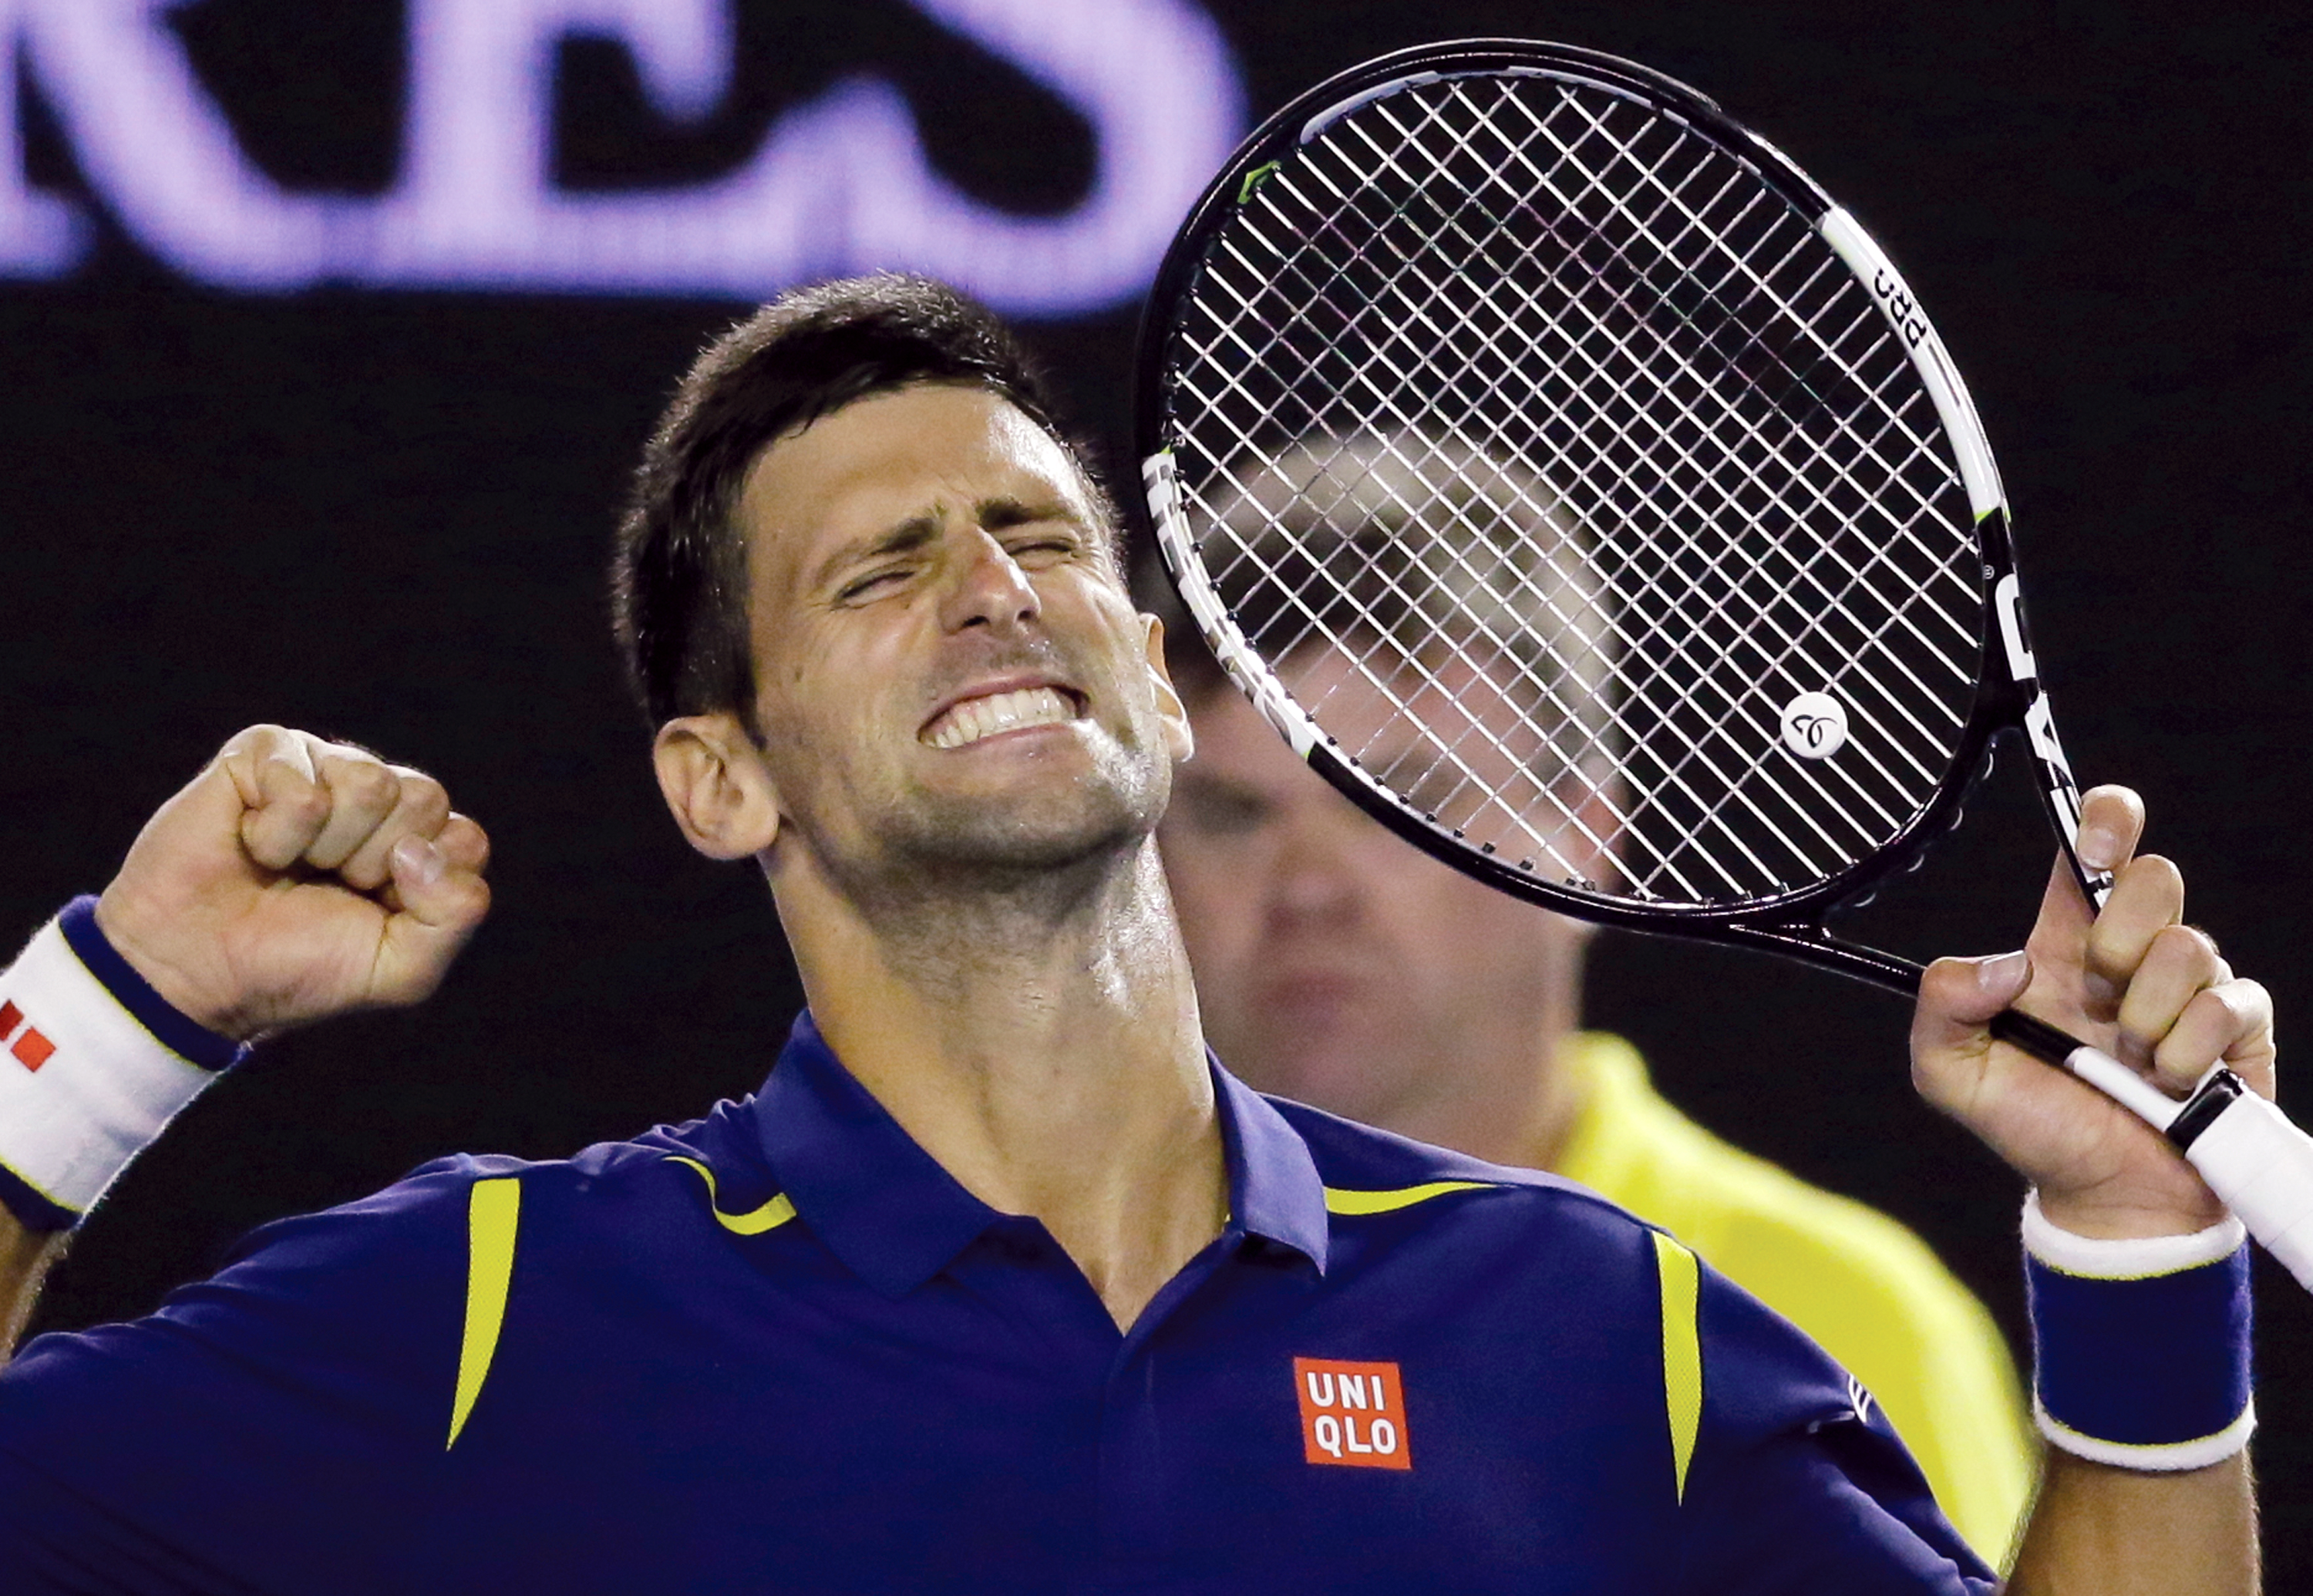 Novak Djokovic of Serbia celebrates after defeating Roger Federer of Switzerland in their semifinal match at the Australian Open tennis championships in Melbourne, Australia, Thursday, Jan. 28, 2016.(AP Photo/Aaron Favila)